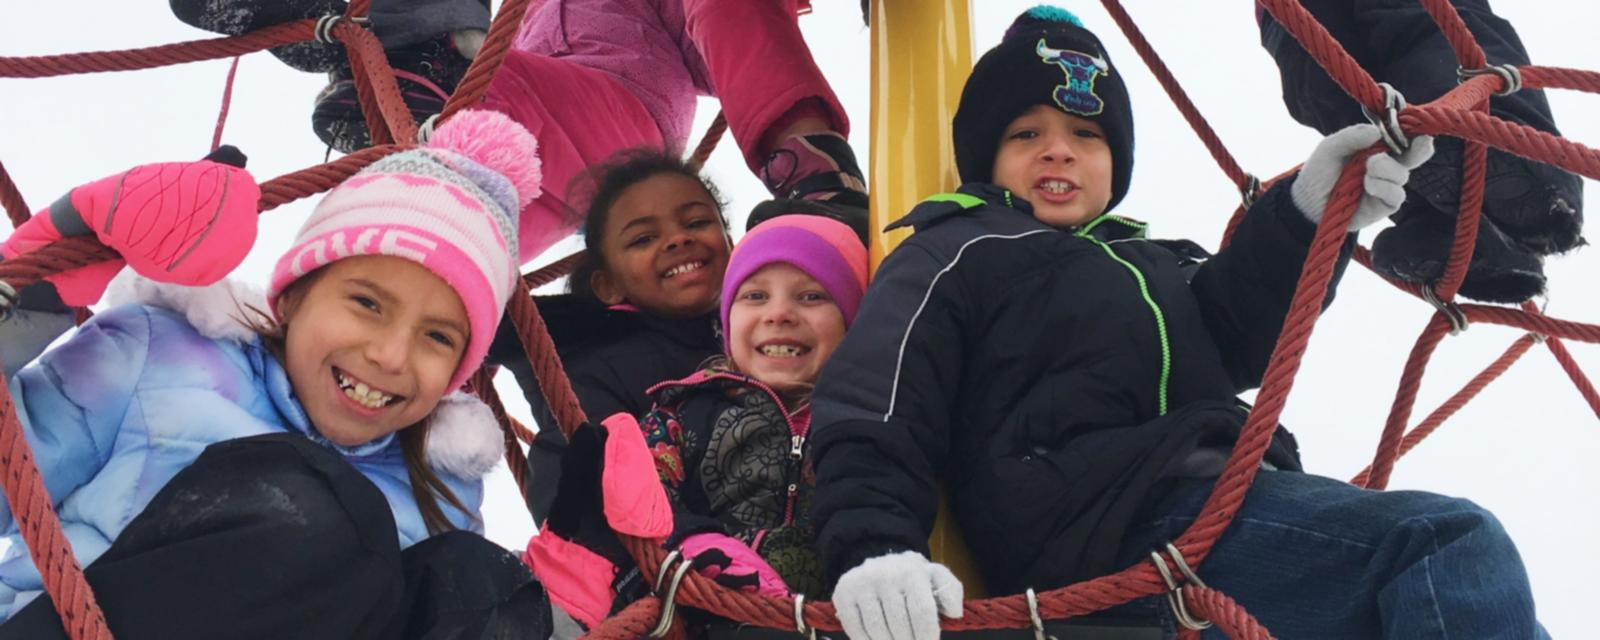 Students in winter gear on playground